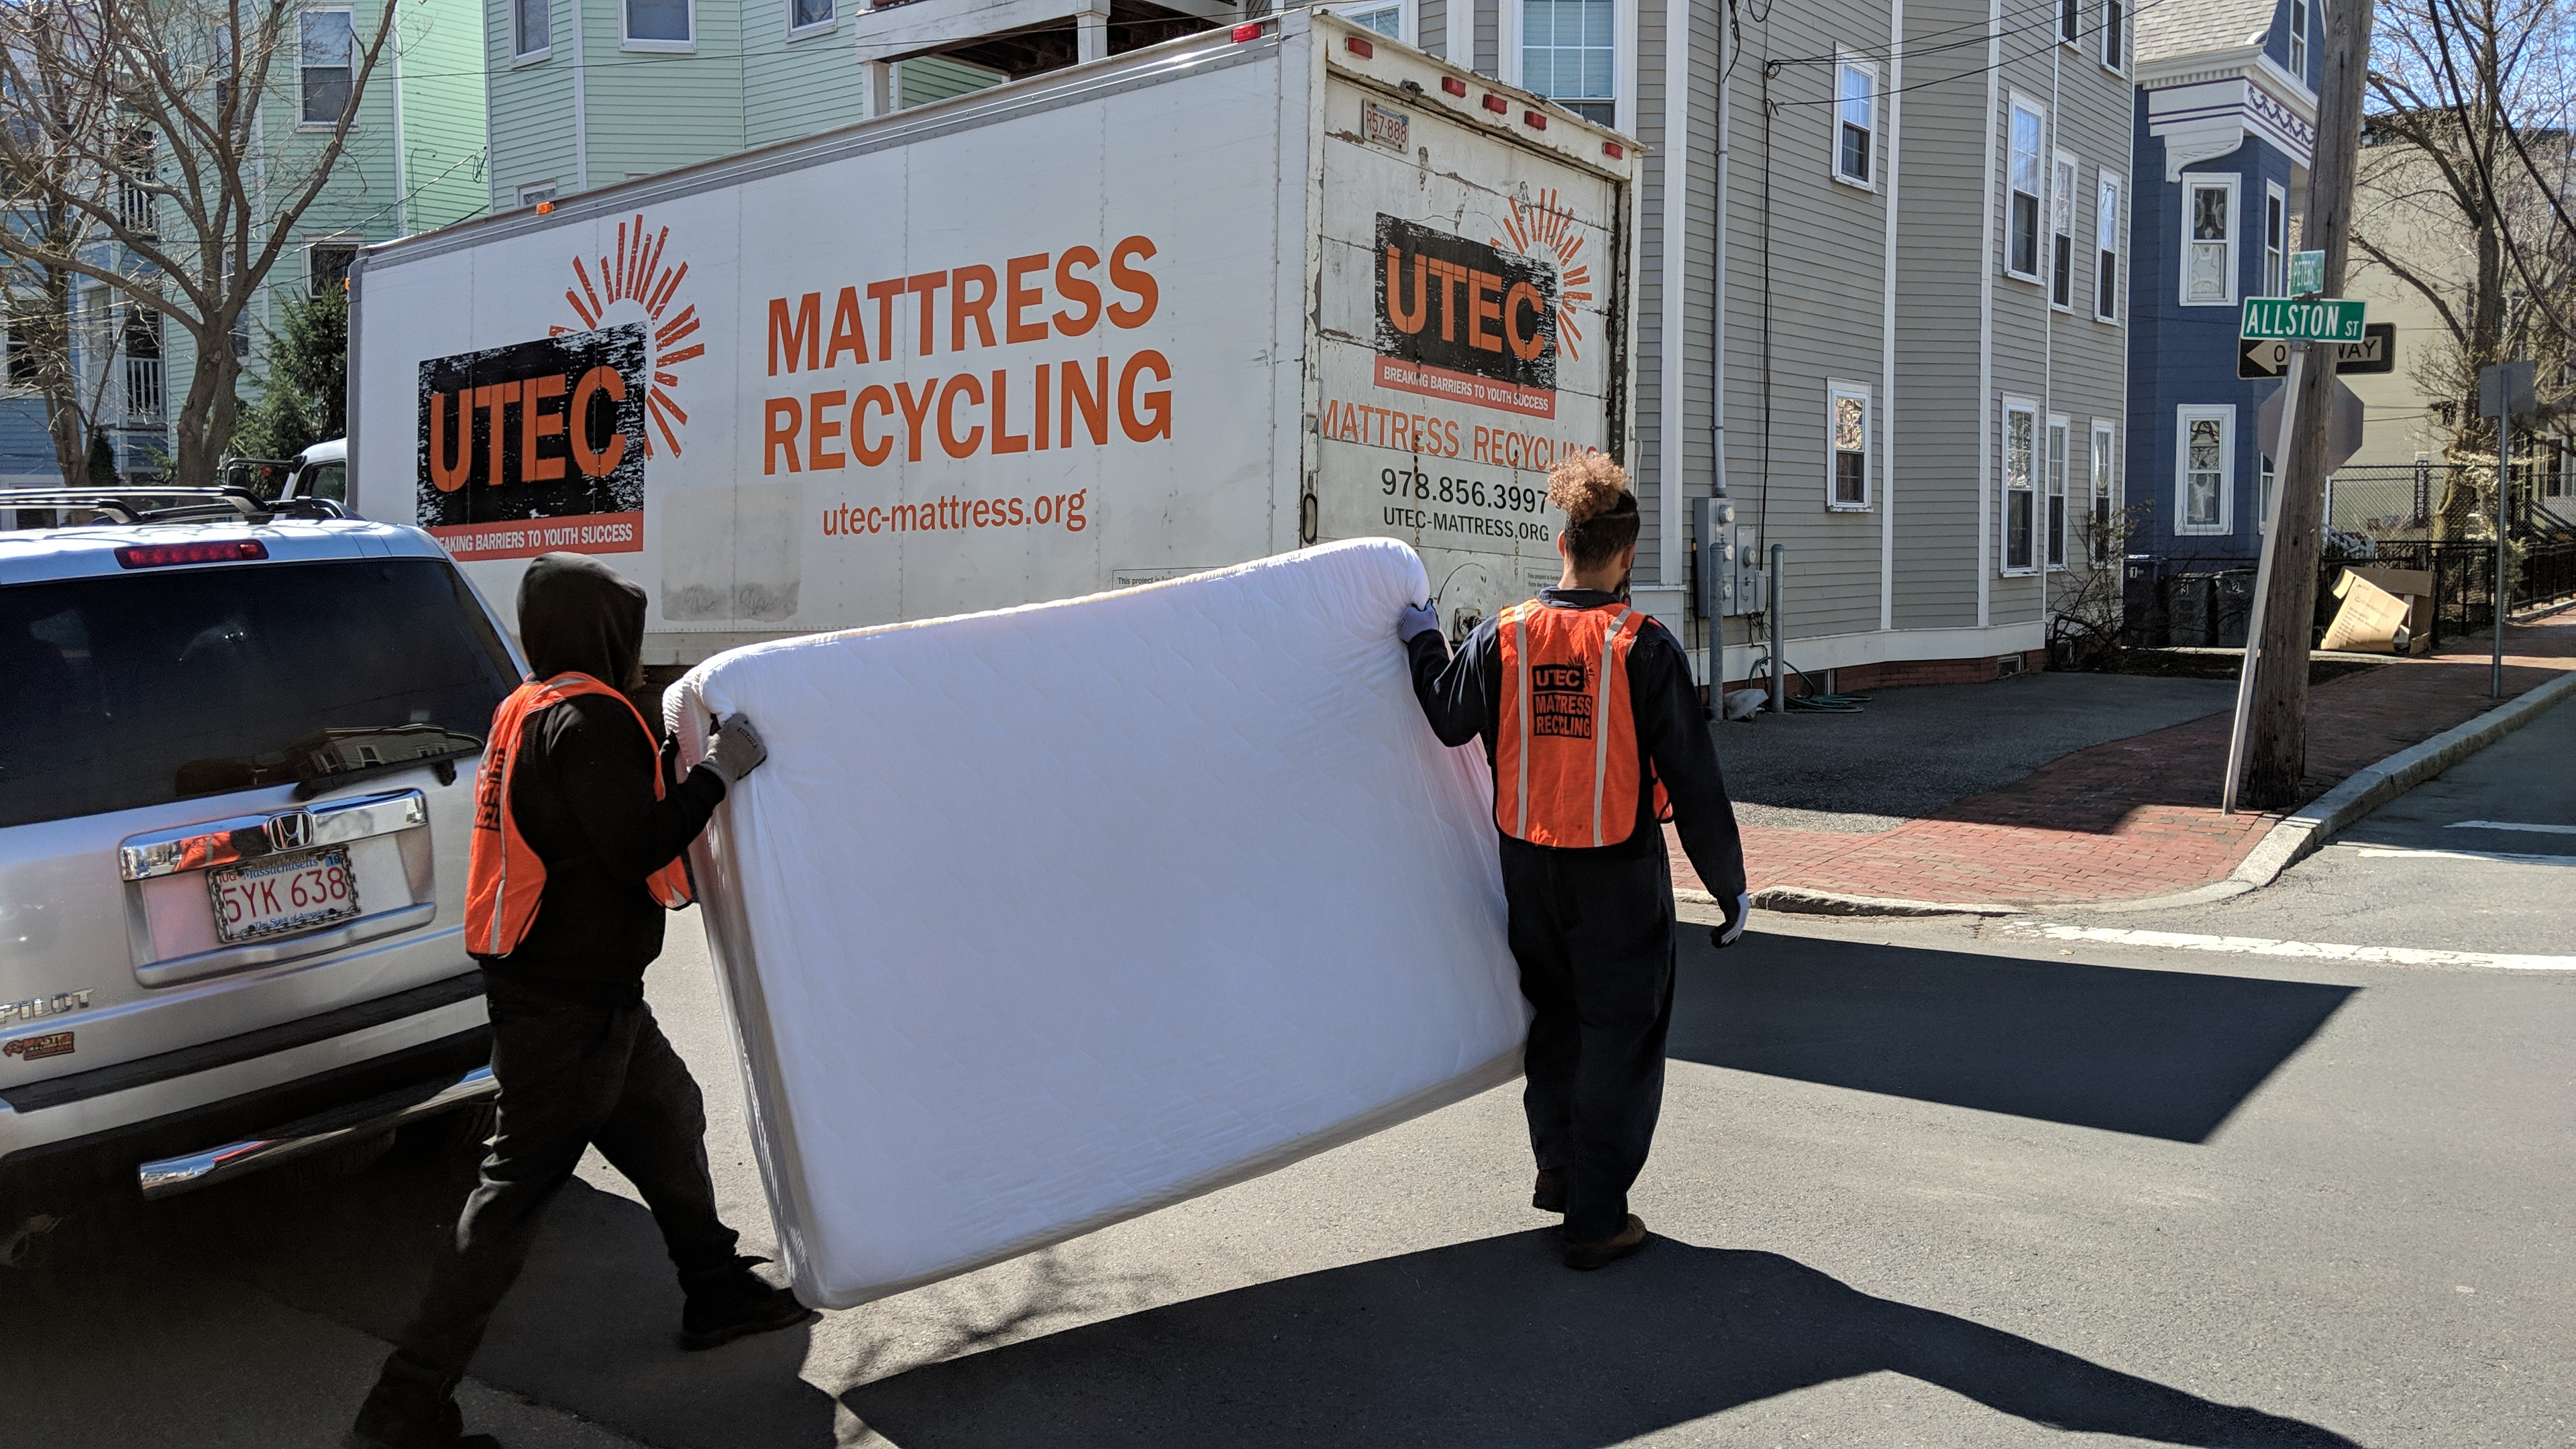 Two people carrying a mattress to a truck